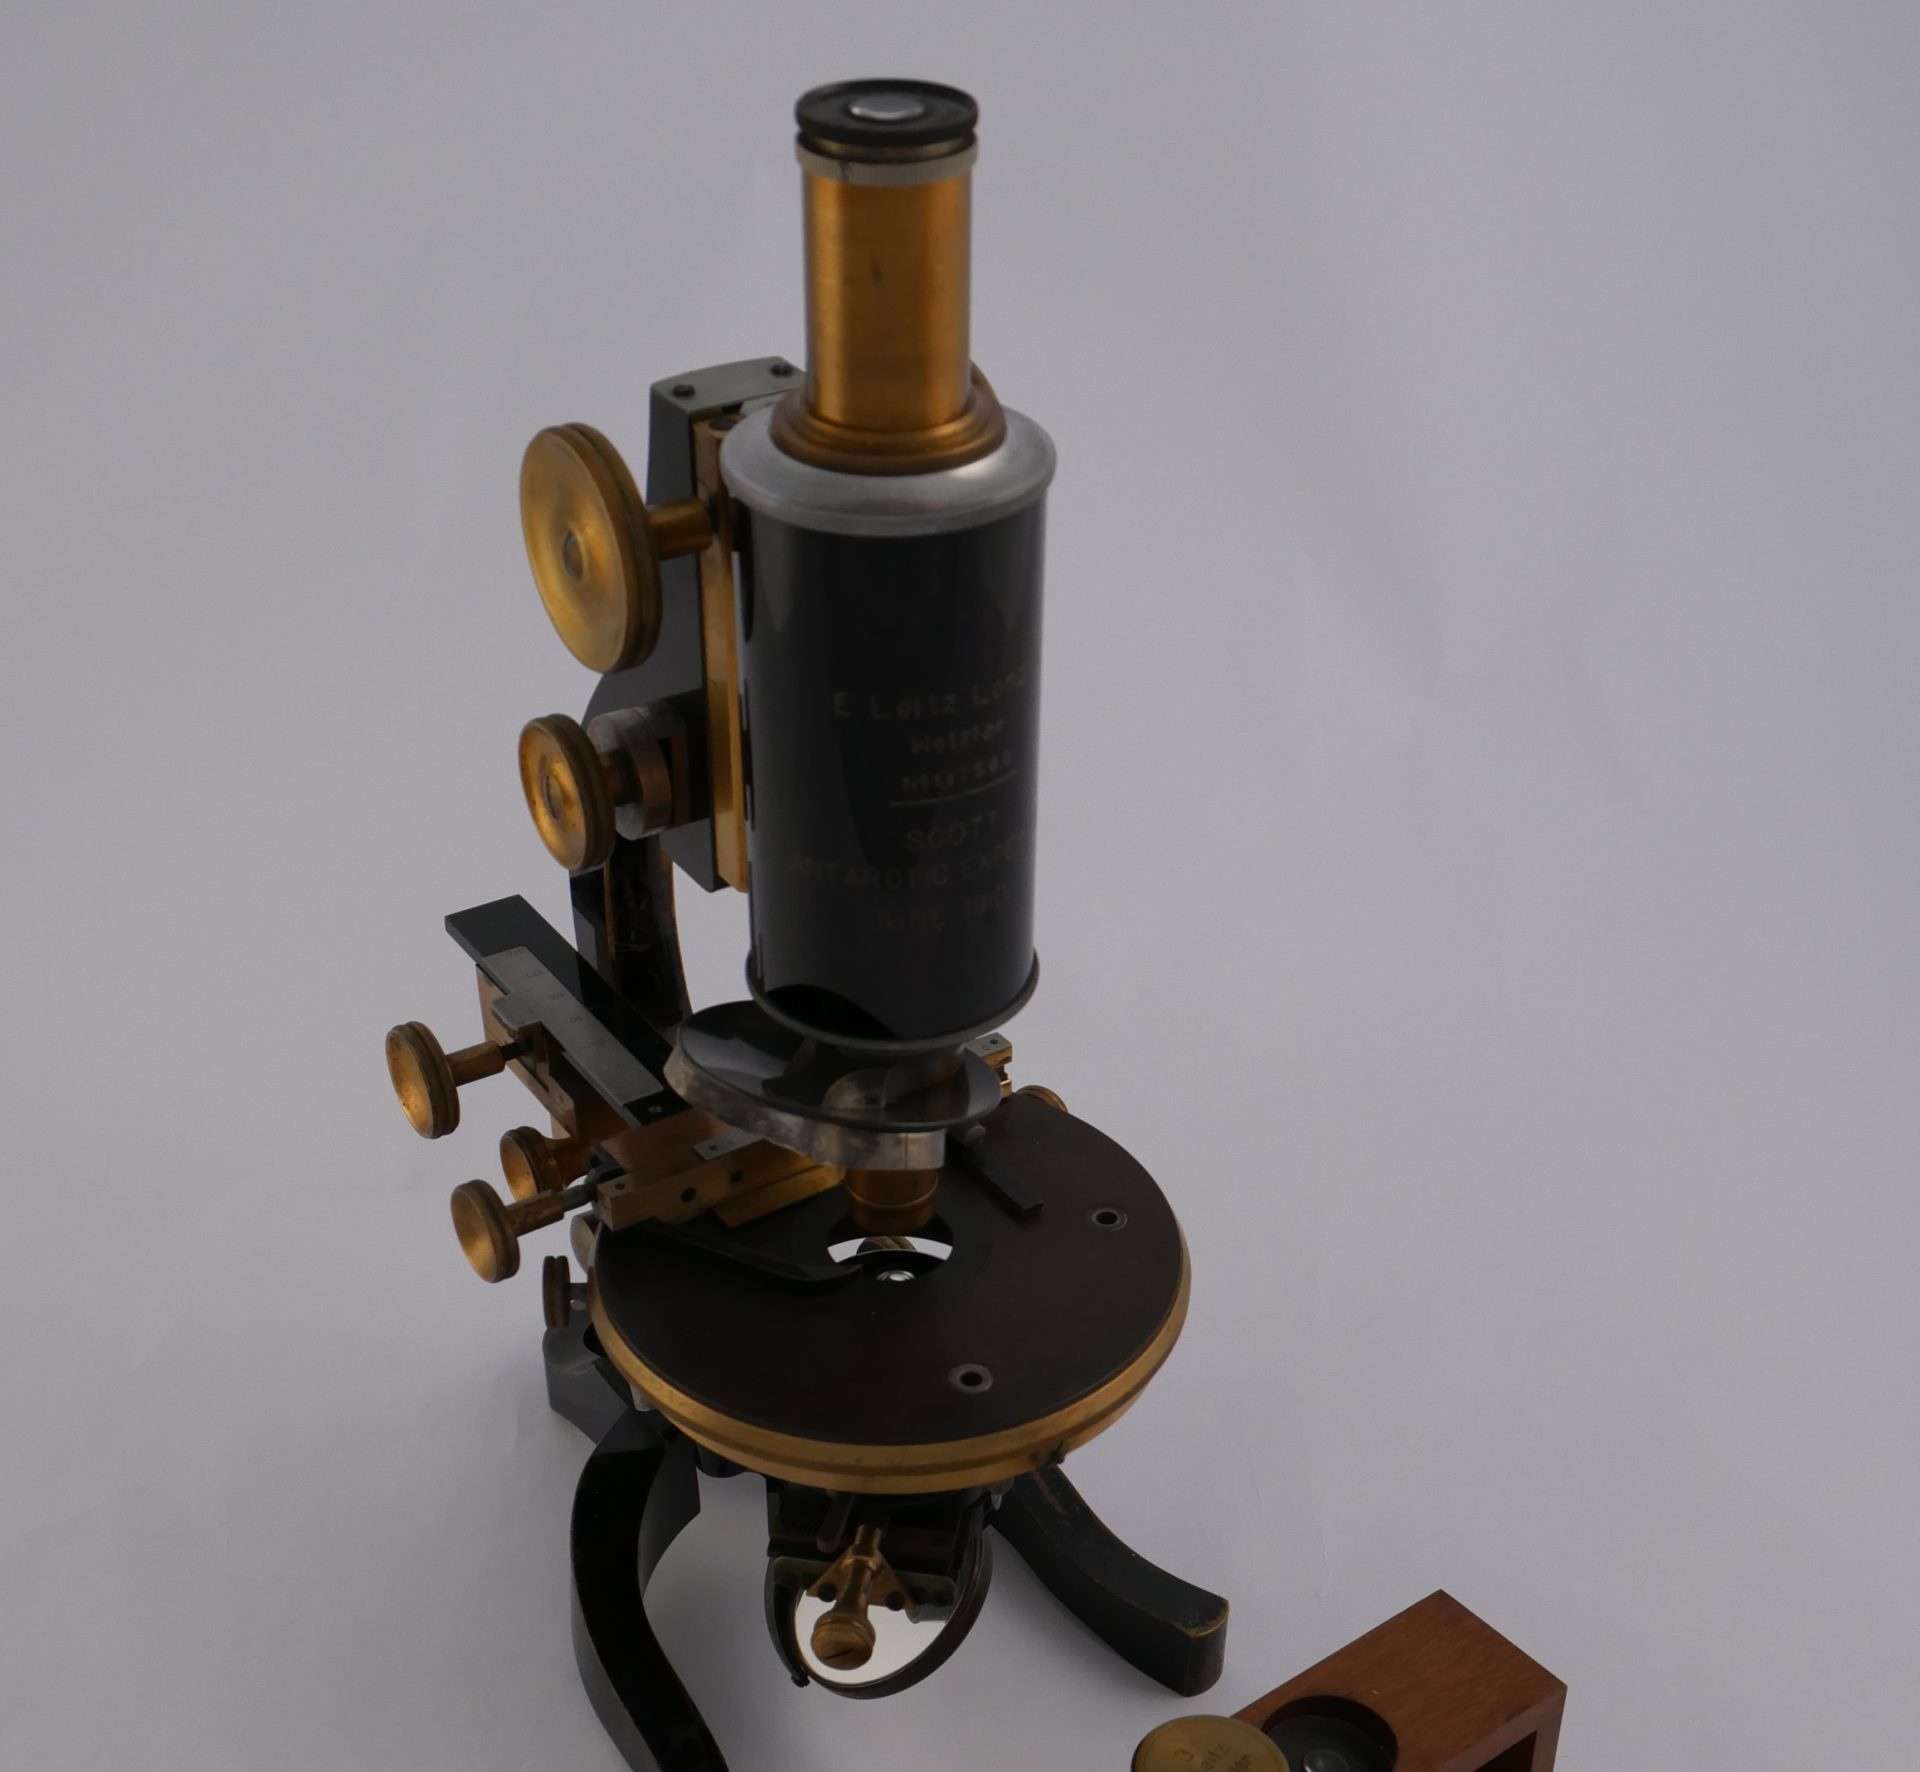 The microscope donated to Discovery Point.